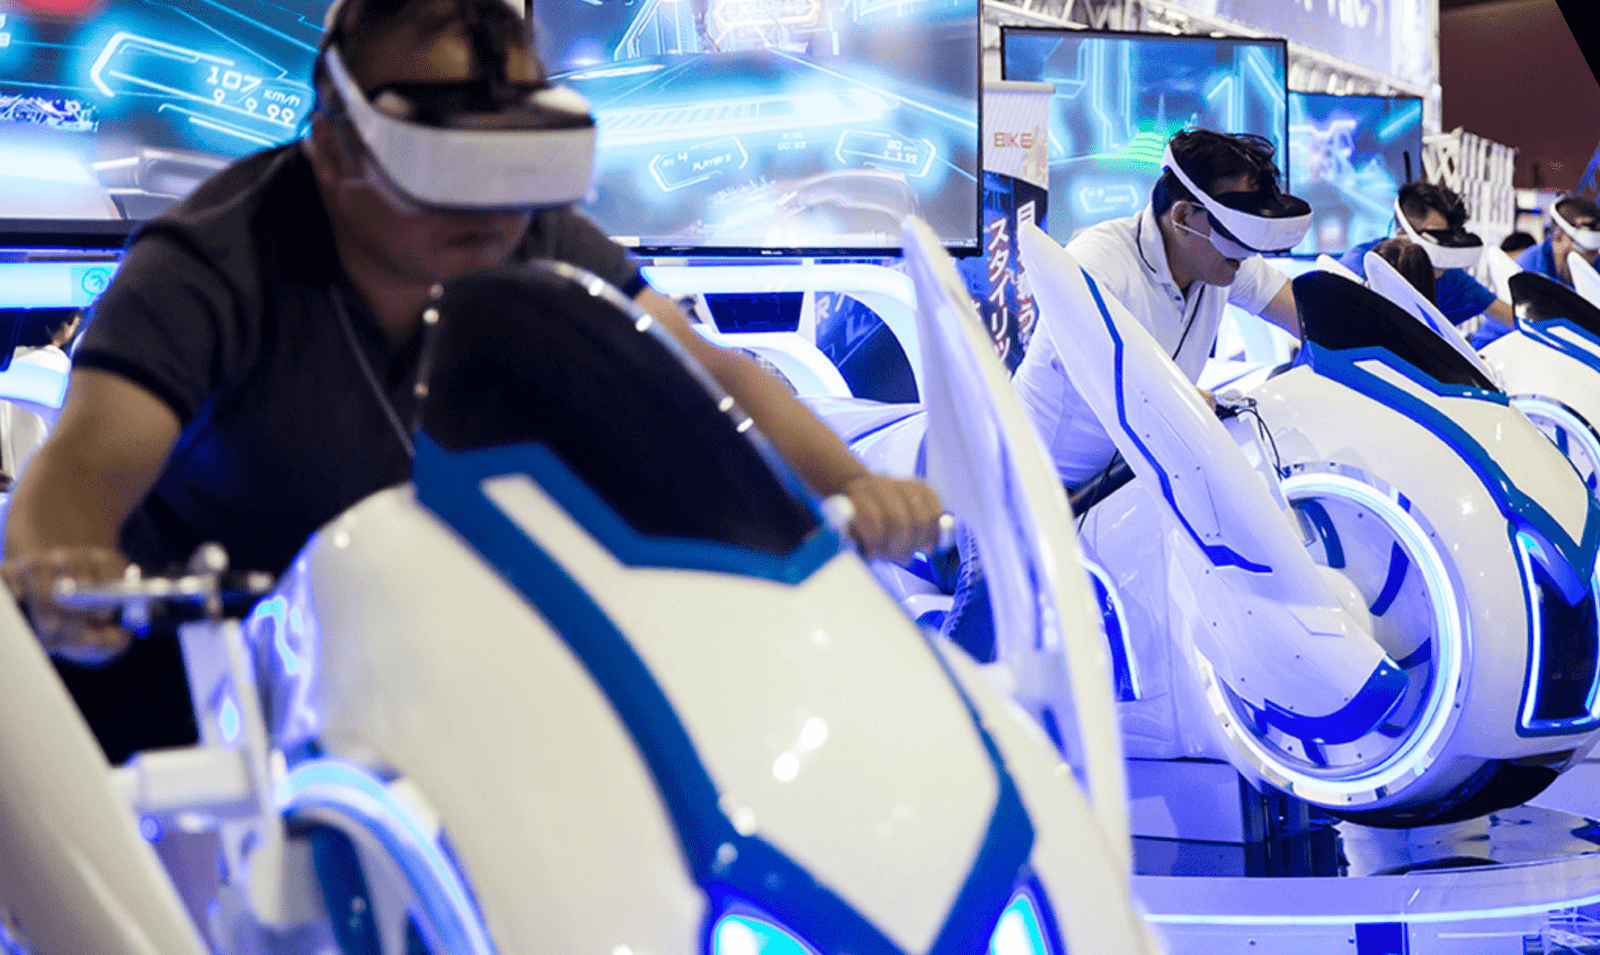 Tokyo Game Show 2019: the World's Largest Video Game Event